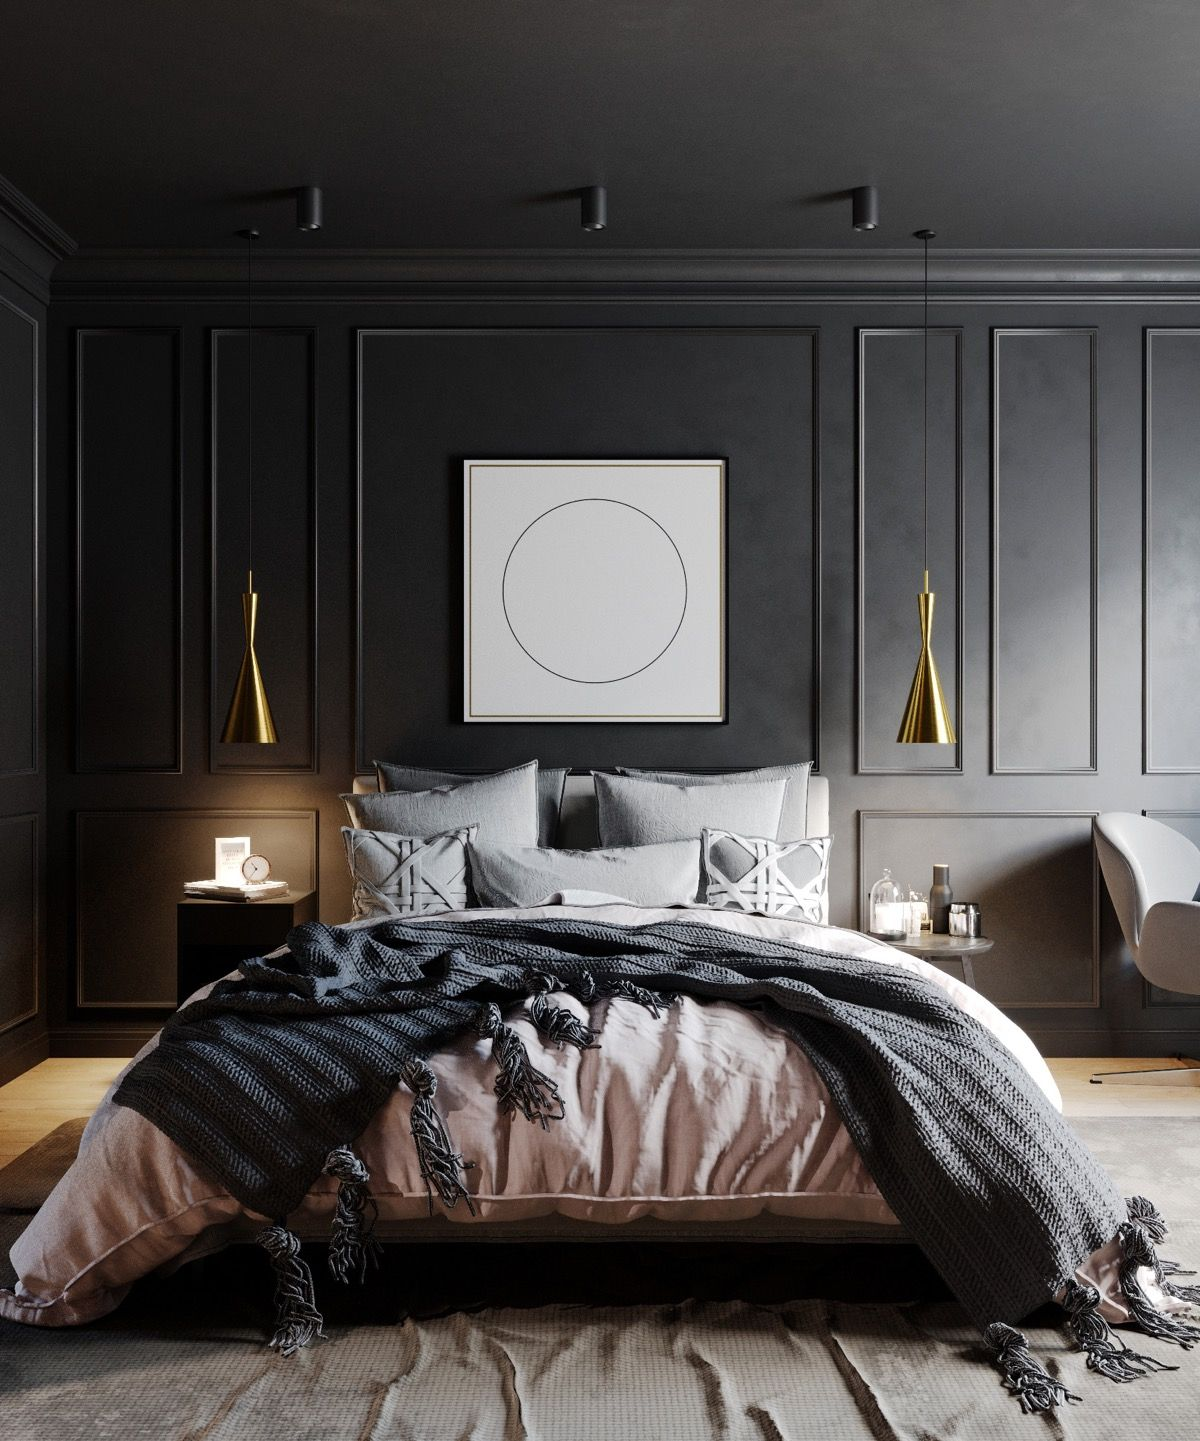 51 Beautiful Black Bedrooms With Images Tips Accessories To